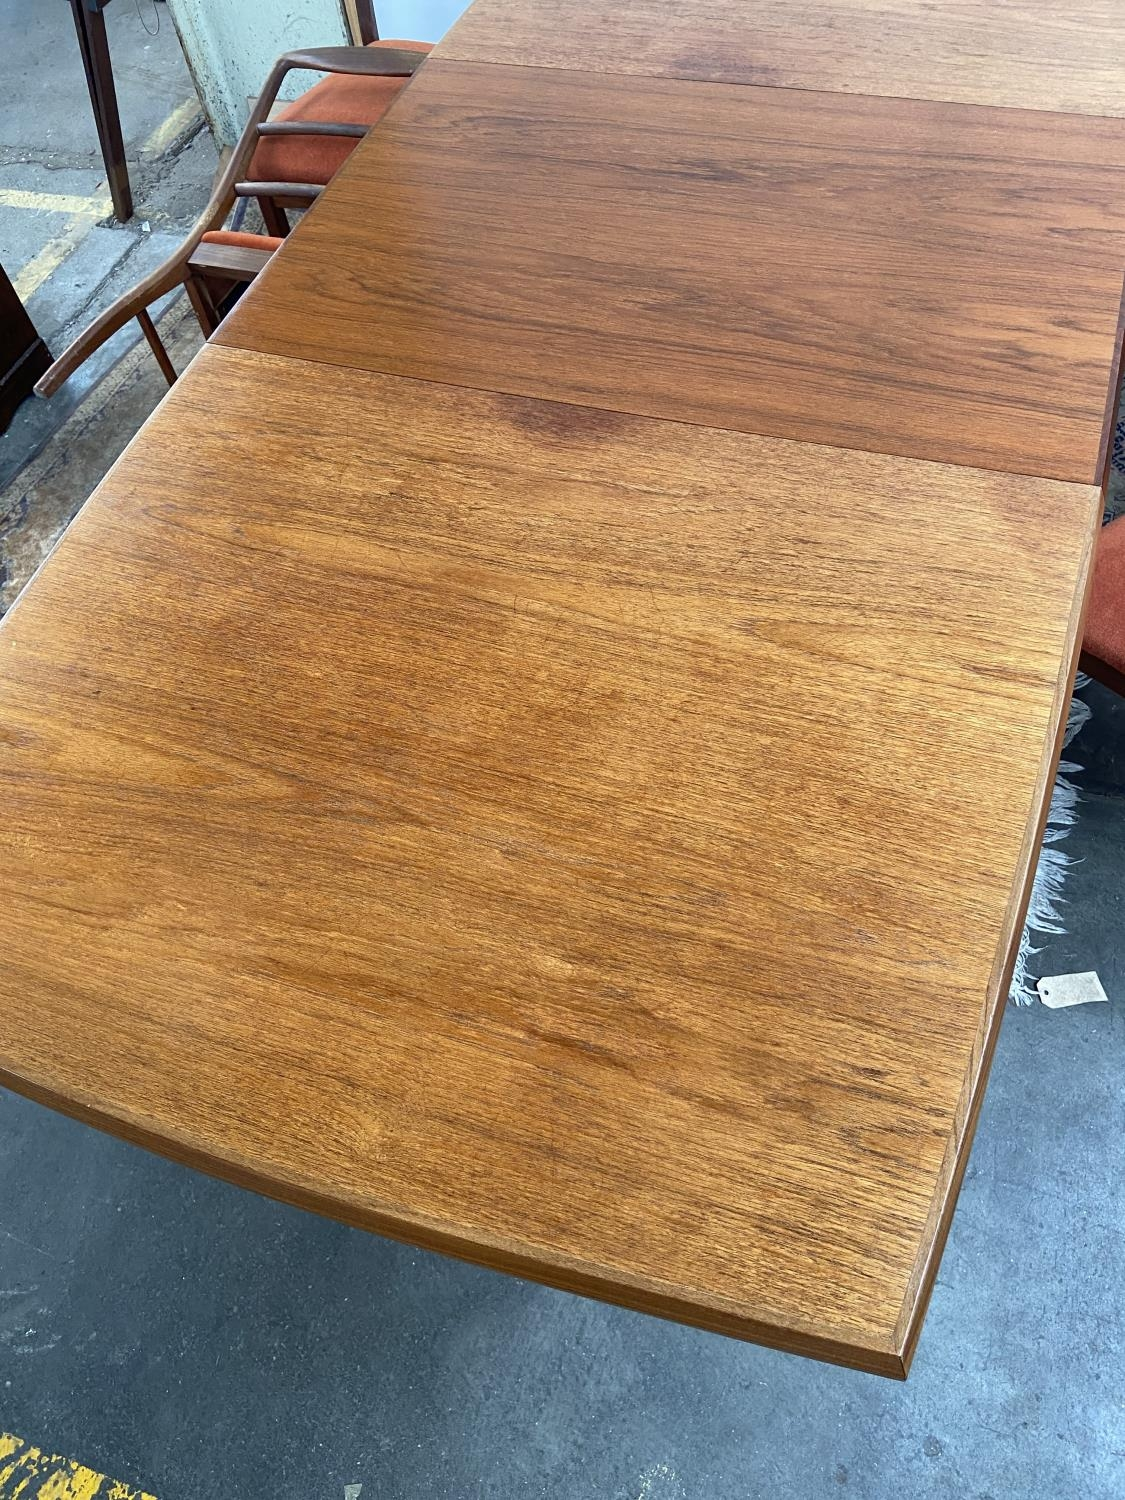 A Retro mid century teak dining table and four matching chairs produced by Vanson. [Table extended - Image 9 of 13